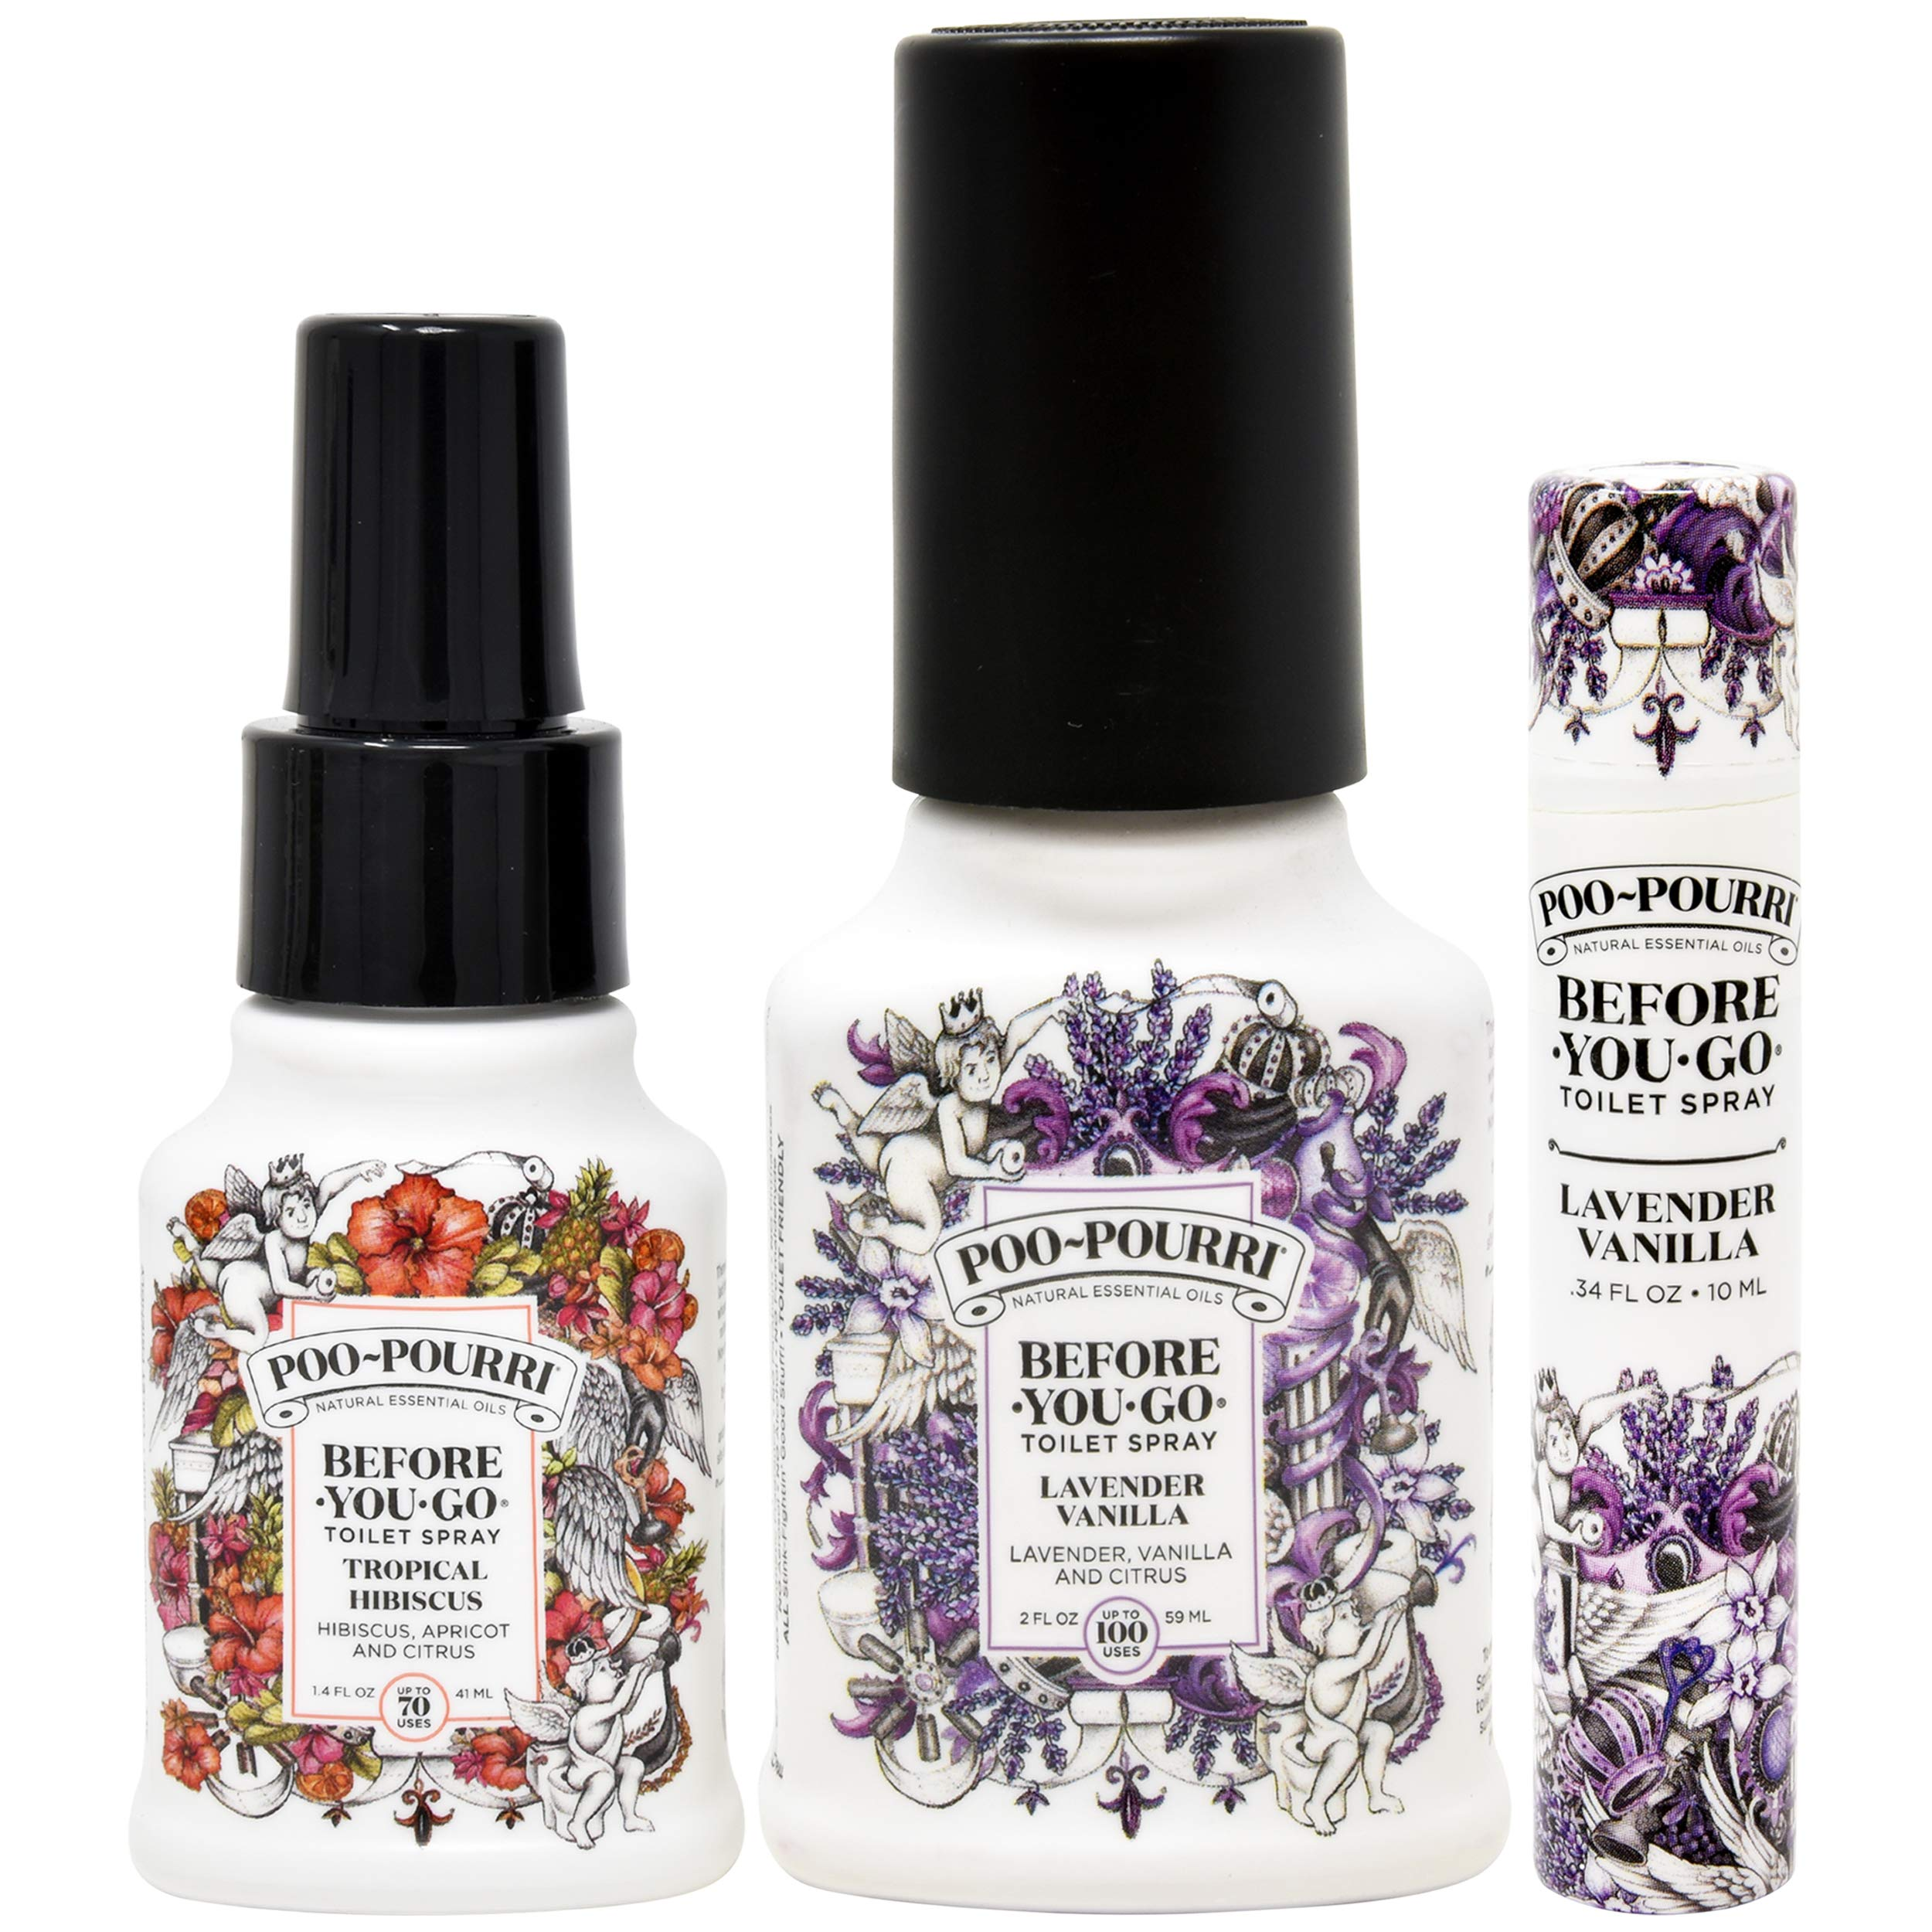 Poo-Pourri Lavender Vanilla Before You Go Toilet Spray 2 Ounce, Tropical Hibiscus 1.4 Ounce and Travel Size Disposable Spritzer by Poo-Pourri